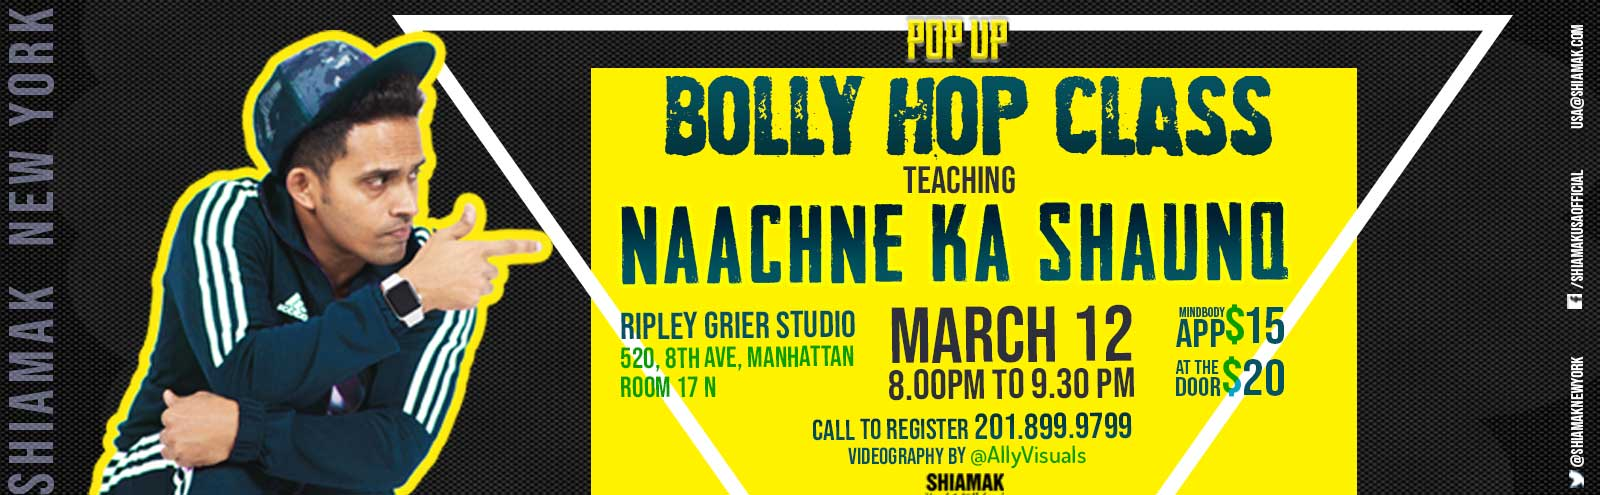 SHIAMAK POP UP BOLLY HOP CLASS